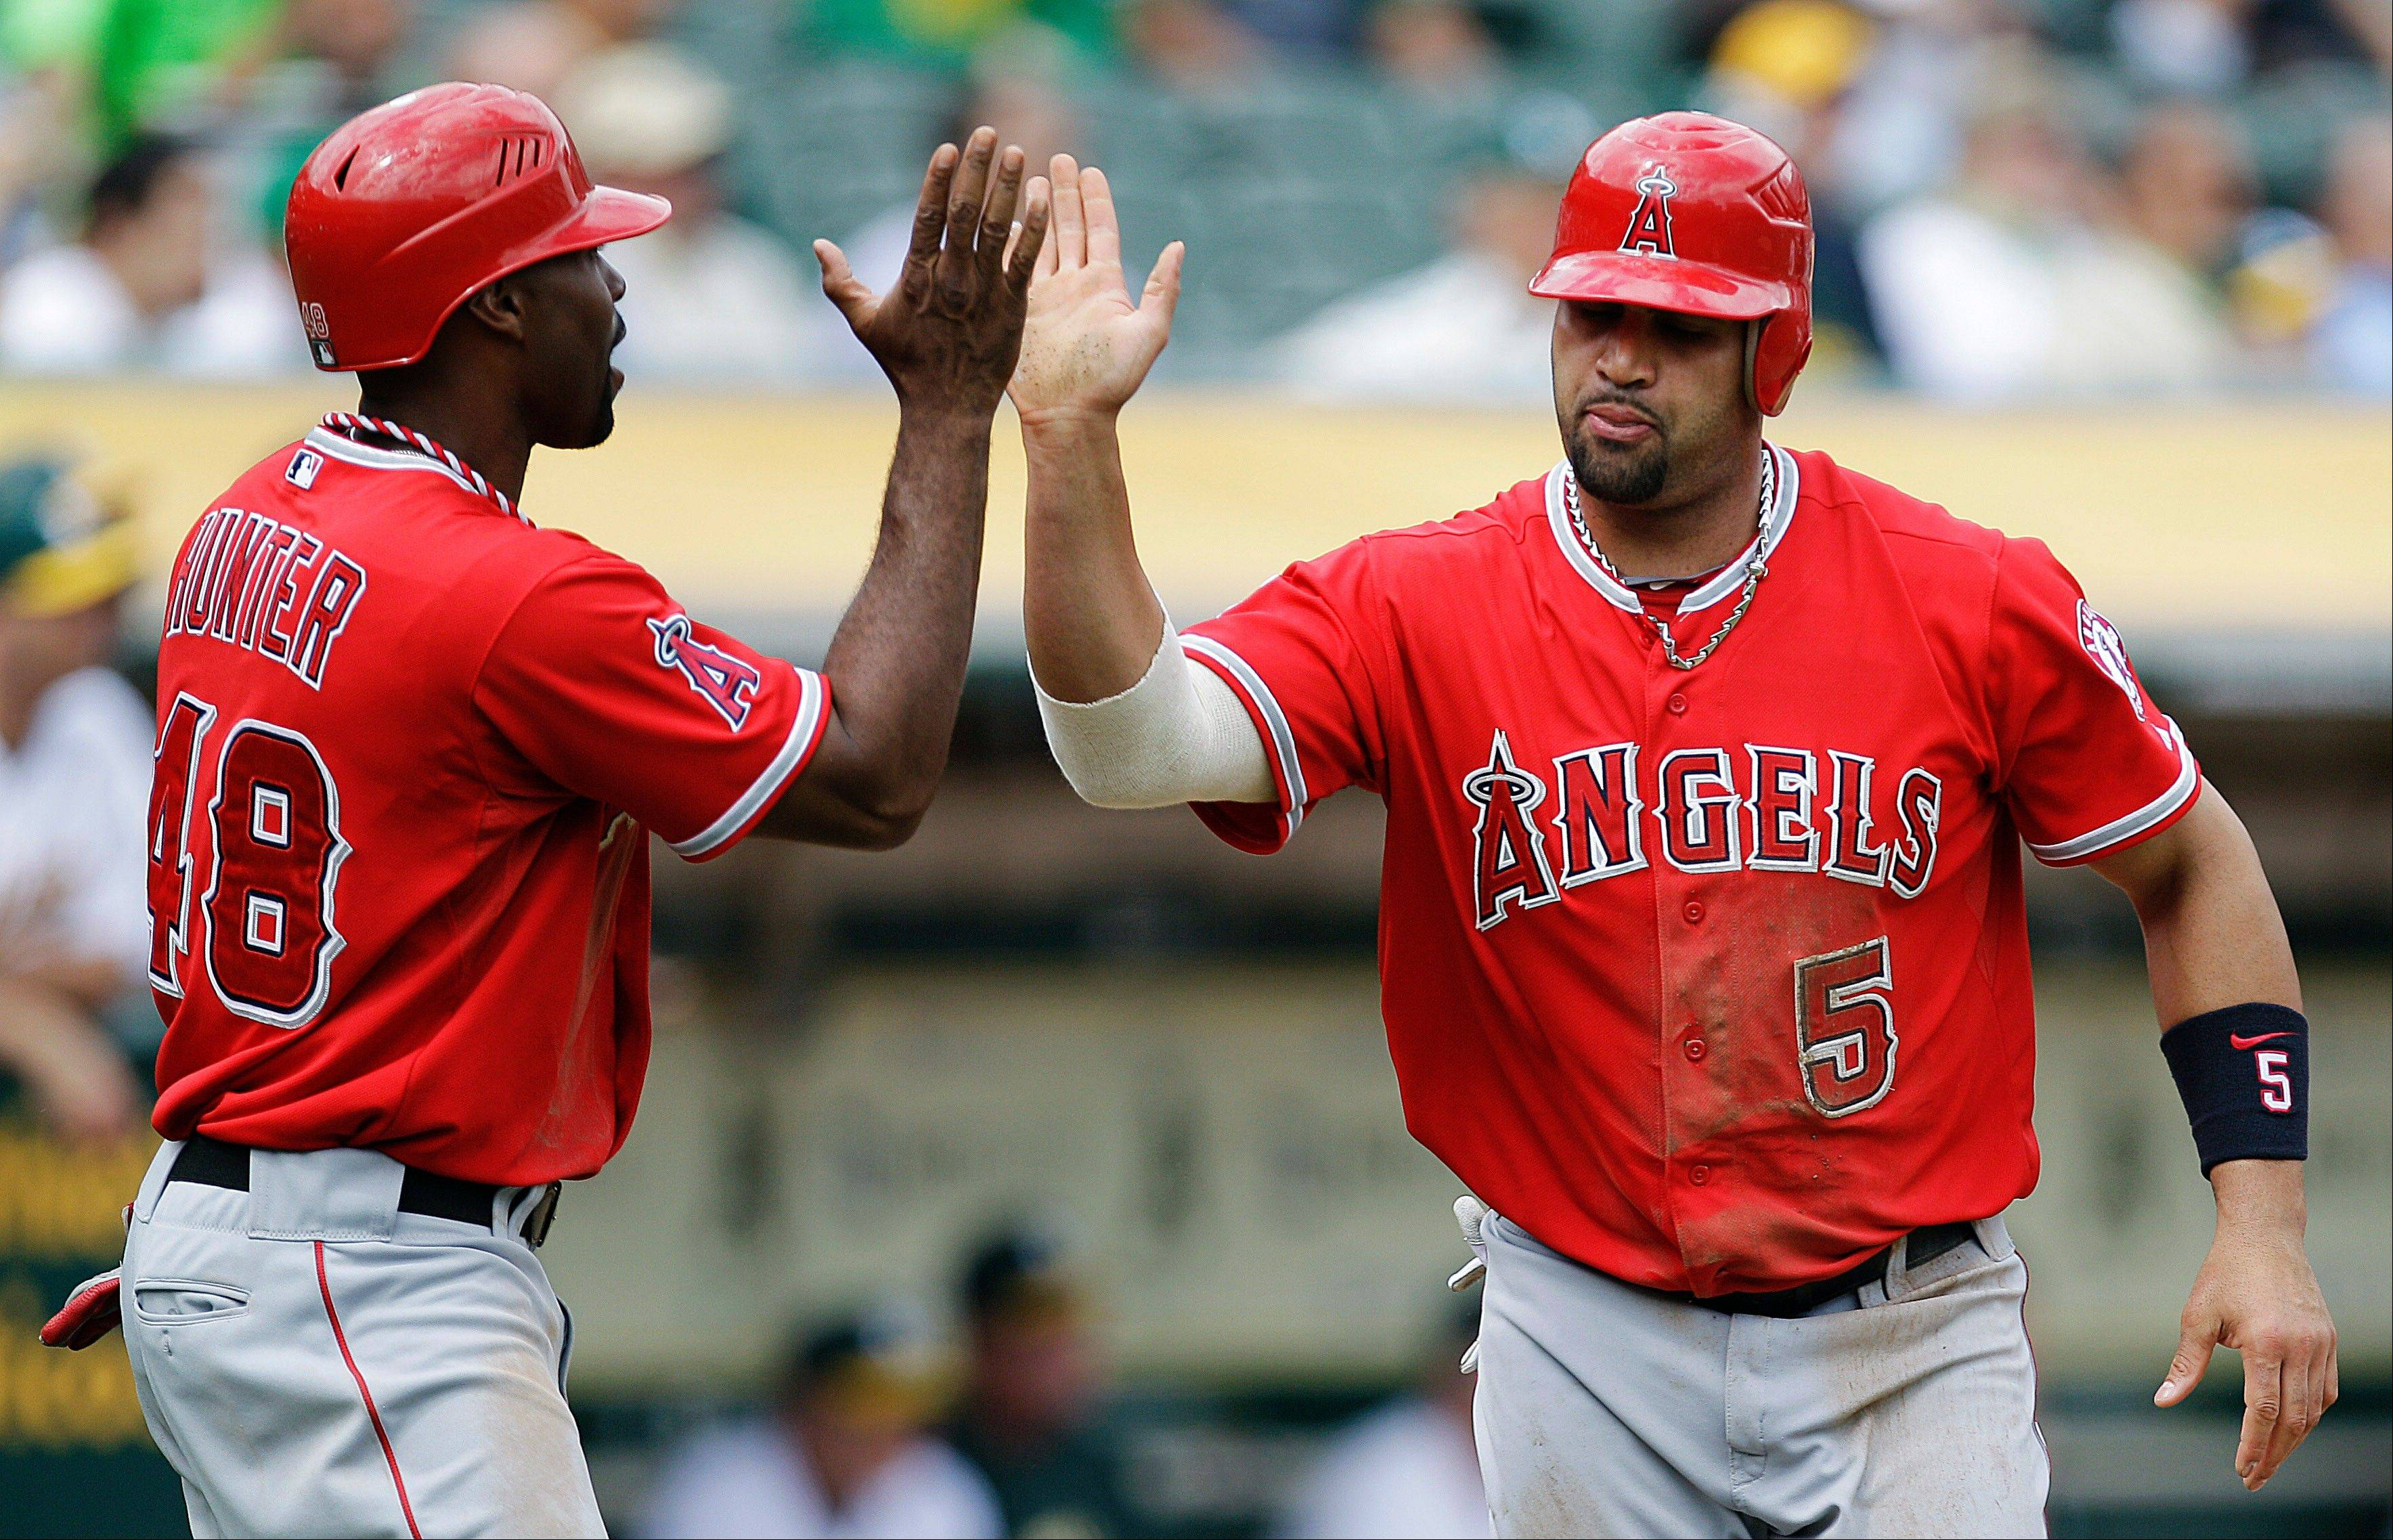 The Angels� Torii Hunter, left, and Albert Pujols celebrate after scoring against the Athletics in the third inning Wednesday in Oakland, Calif.